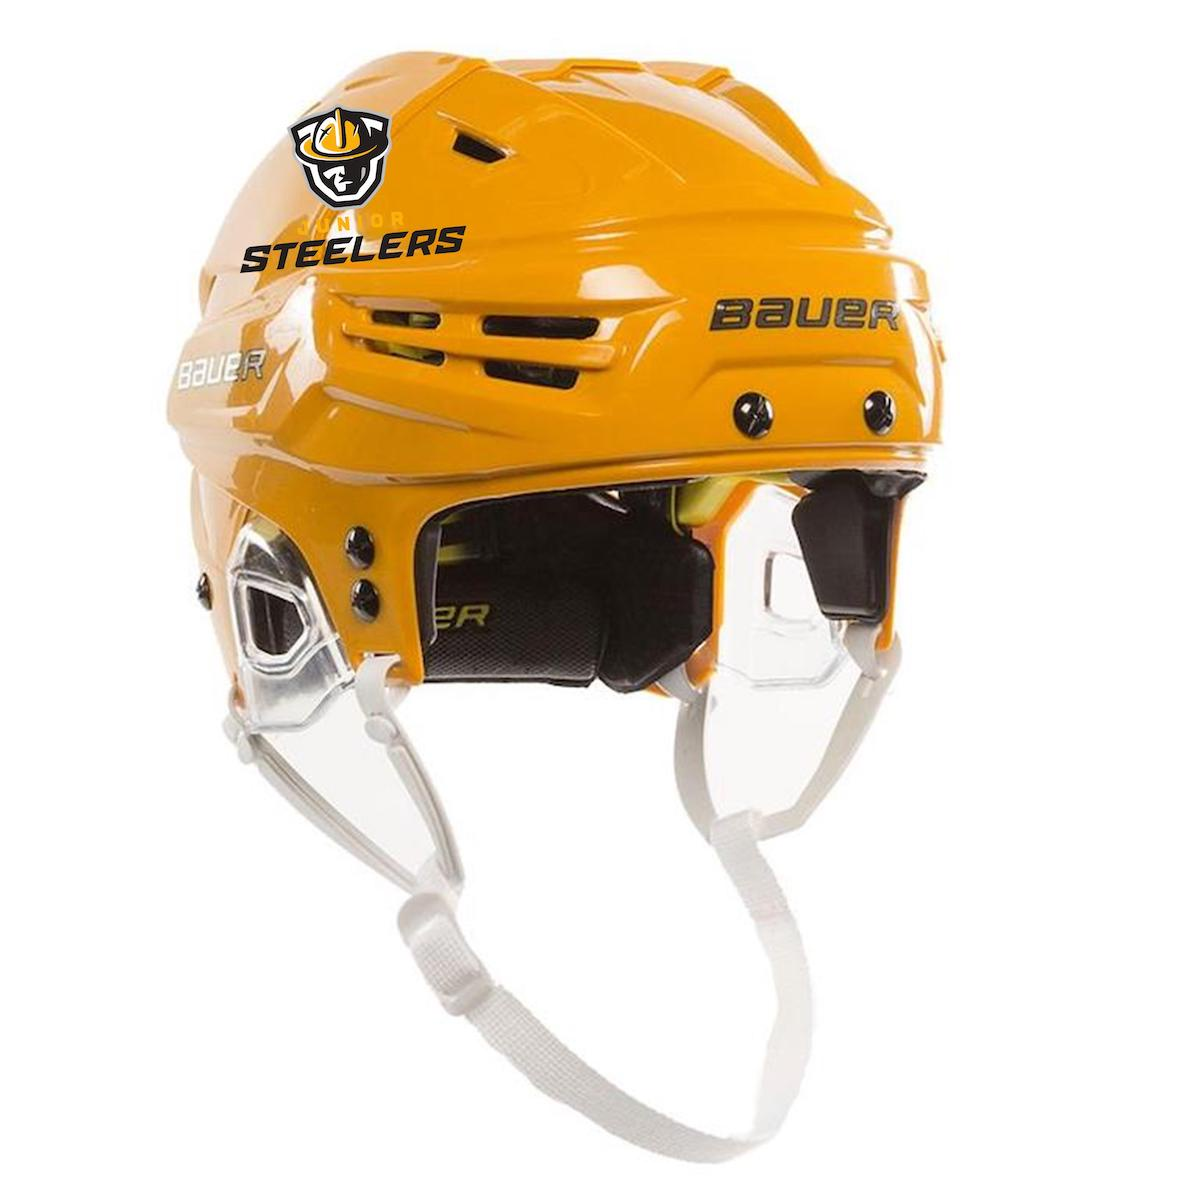 9b0e52660 Home · Junior Steelers Hockey Club  Bauer Reakt Helmet-Gold. Bauer Reakt  Helmet-Gold